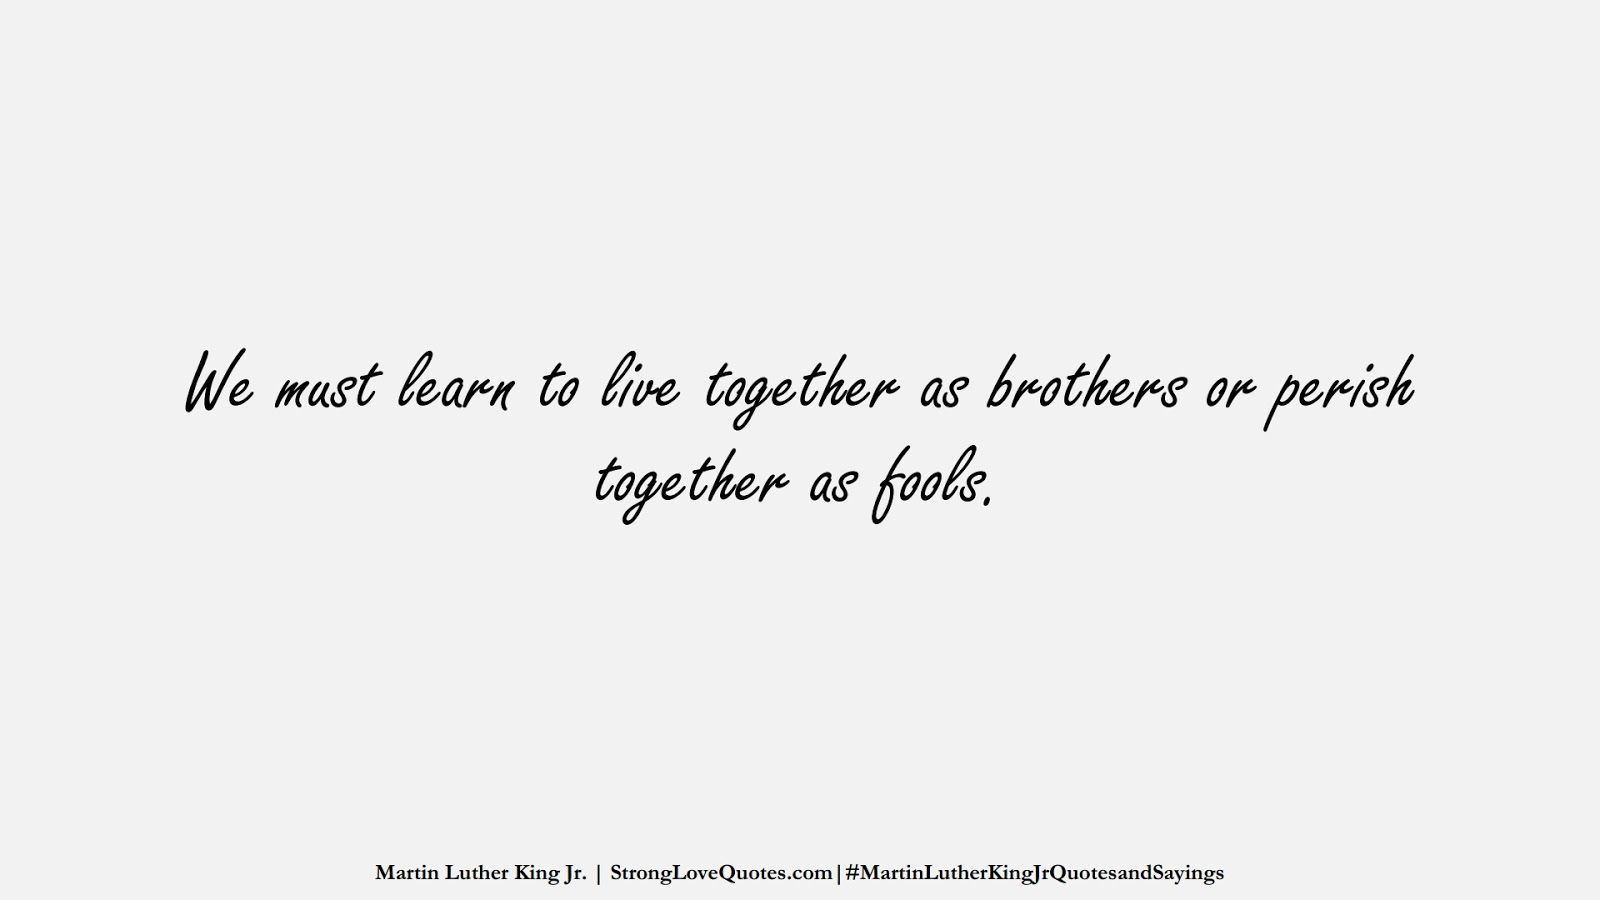 We must learn to live together as brothers or perish together as fools. (Martin Luther King Jr.);  #MartinLutherKingJrQuotesandSayings